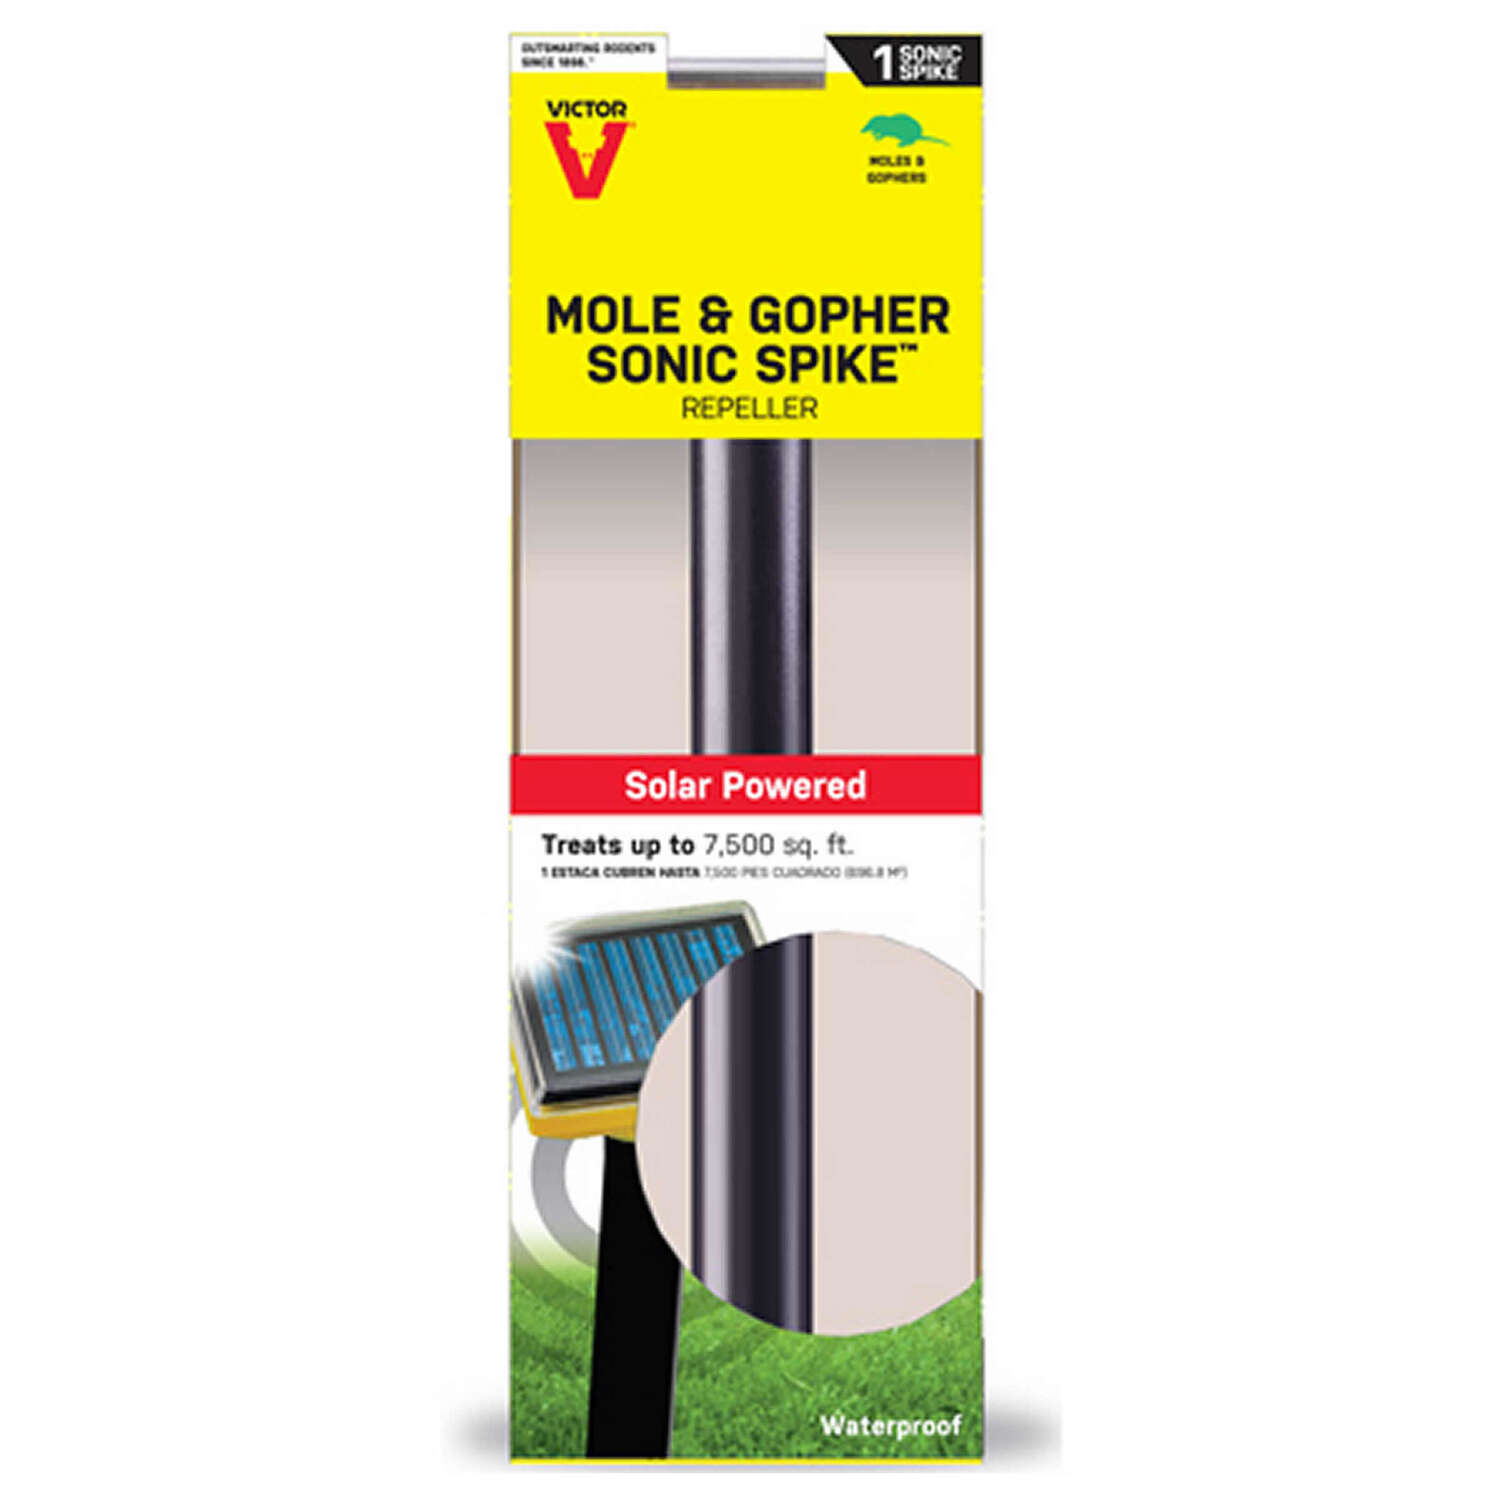 Victor  Sonic Spike Repeller  For Gophers and Moles